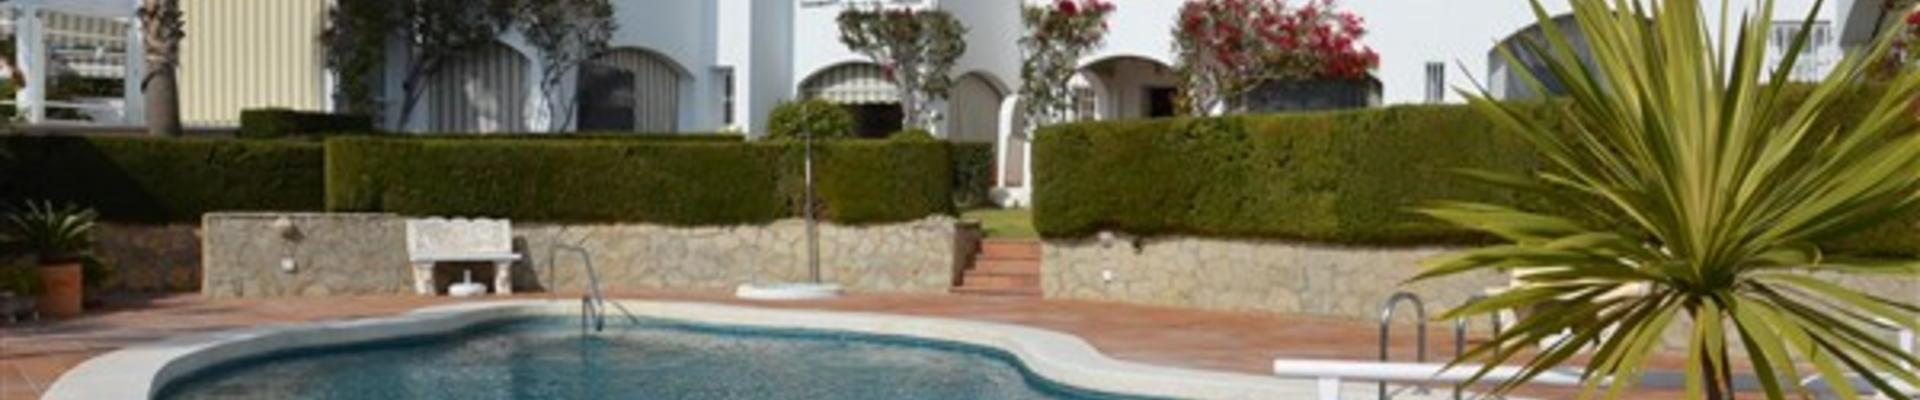 LV763: 3 Bedroom Townhouse for Sale